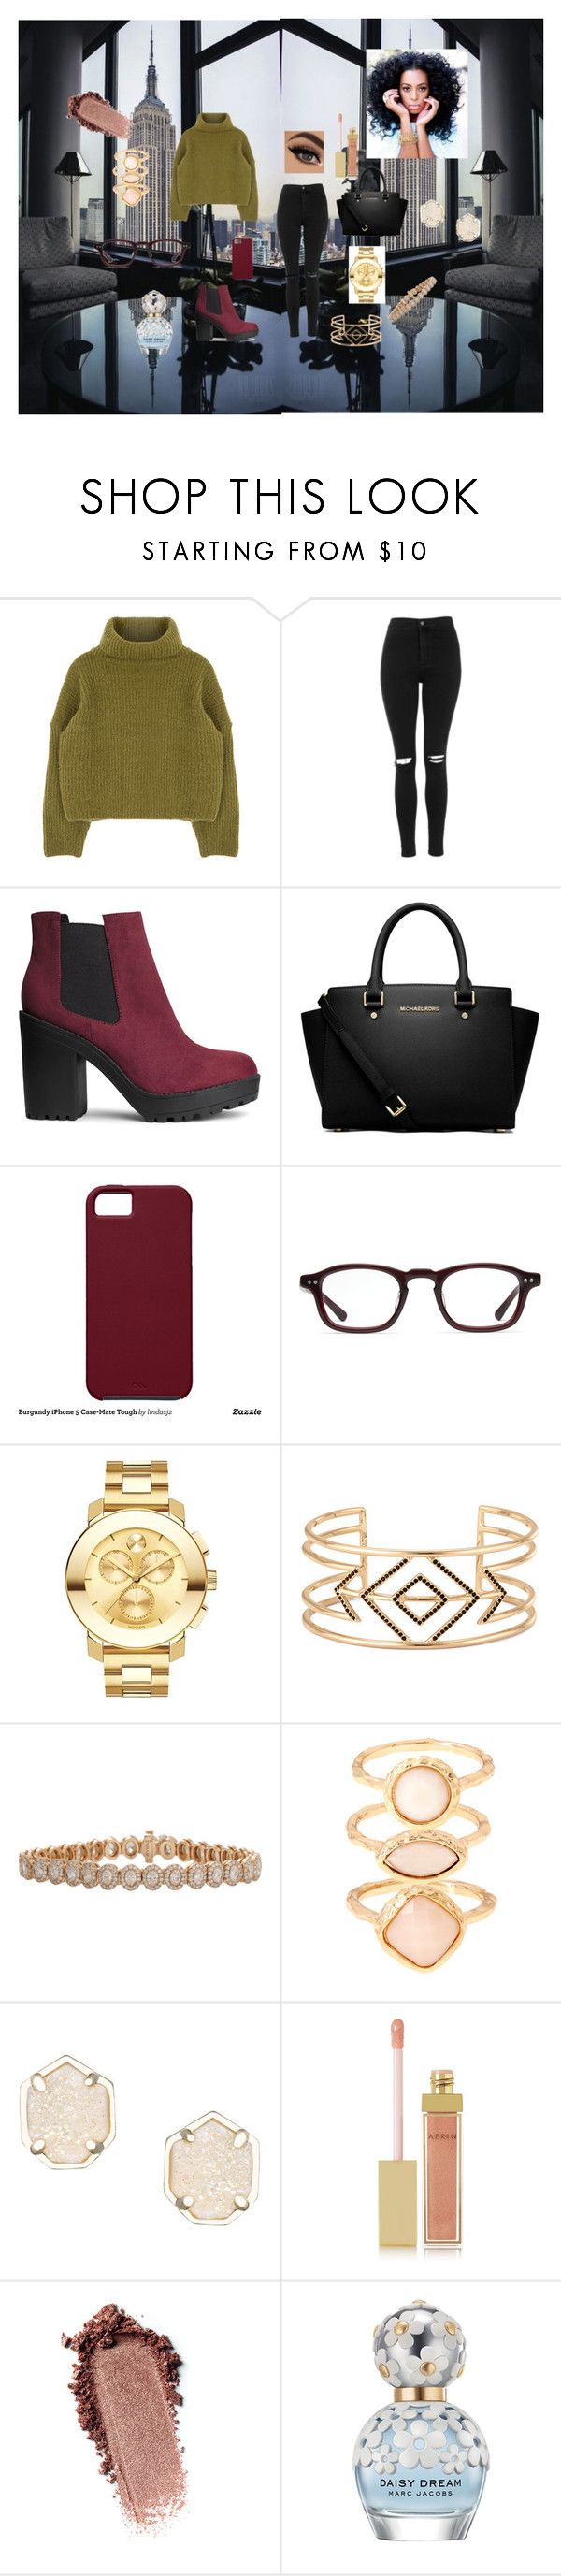 """Untitled #102"" by rosesanders on Polyvore featuring Topshop, H&M, MICHAEL Michael Kors, Case-Mate, Converse, Movado, Stella & Dot, Inbar, Monsoon and Kendra Scott"